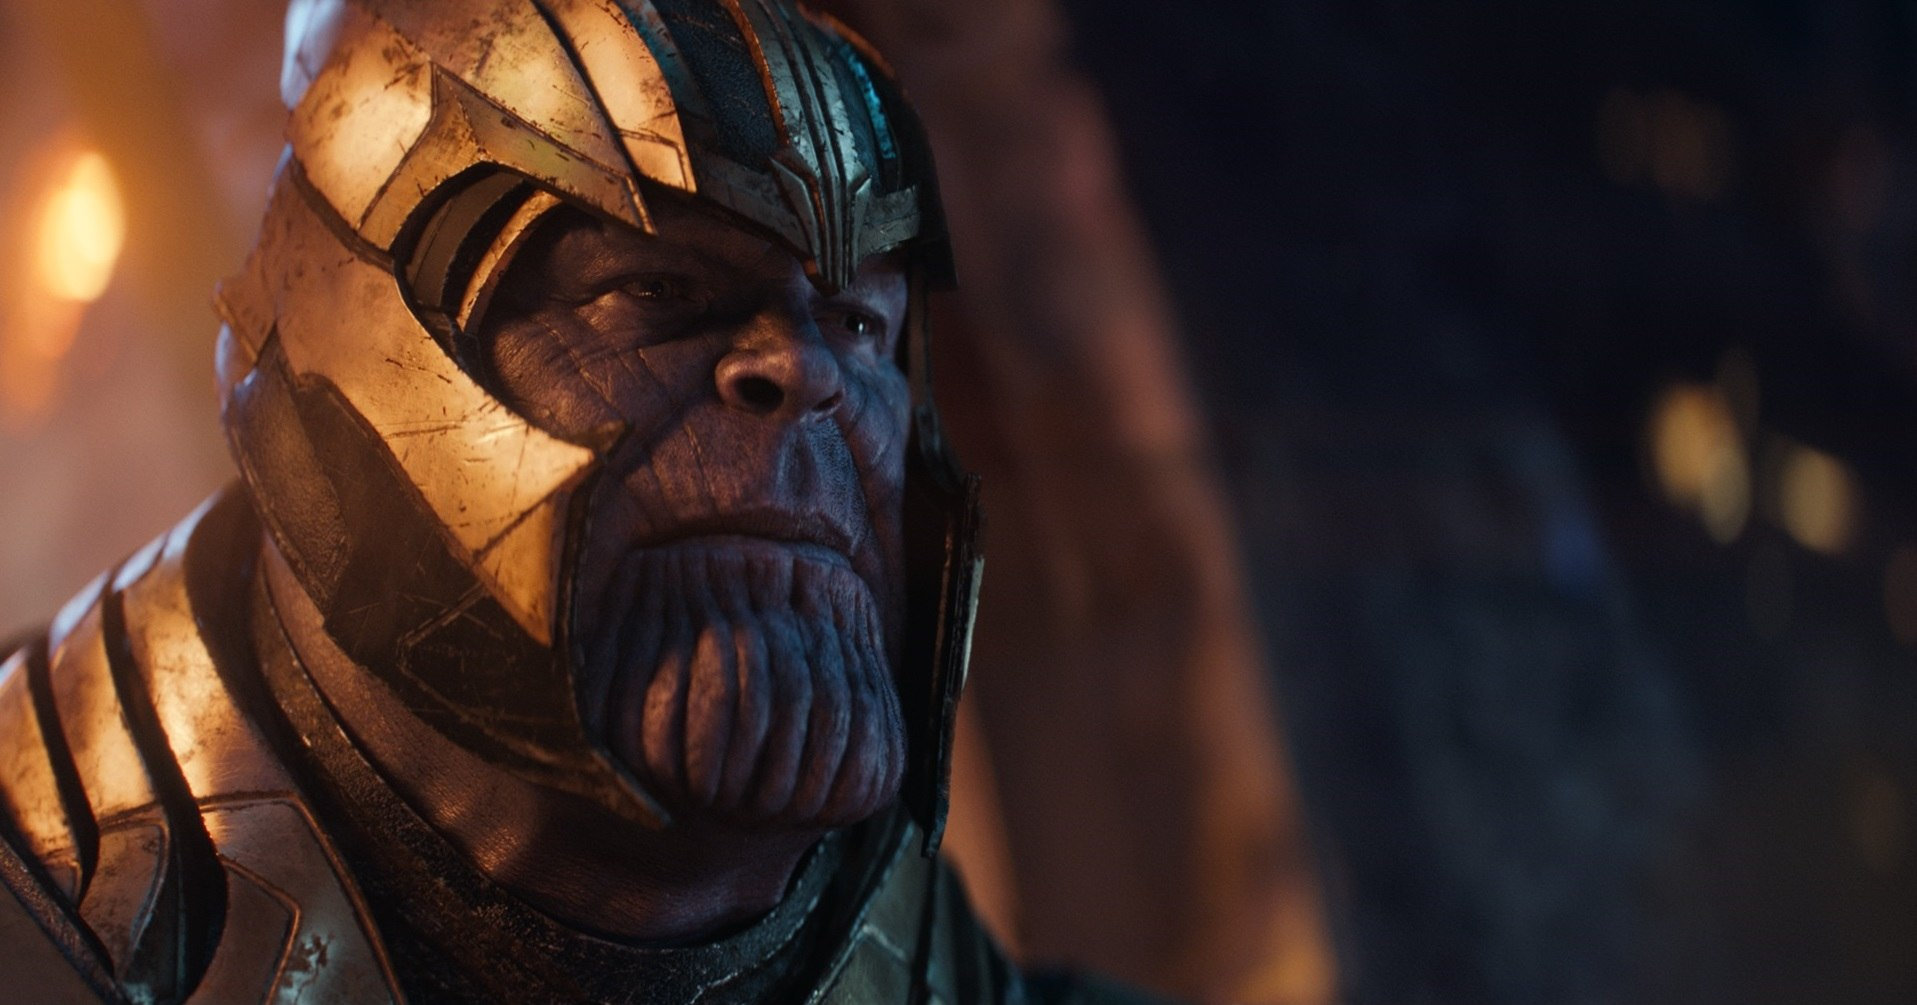 Capturing Thanos How The Ultimate Avengers Adversary Was Brought